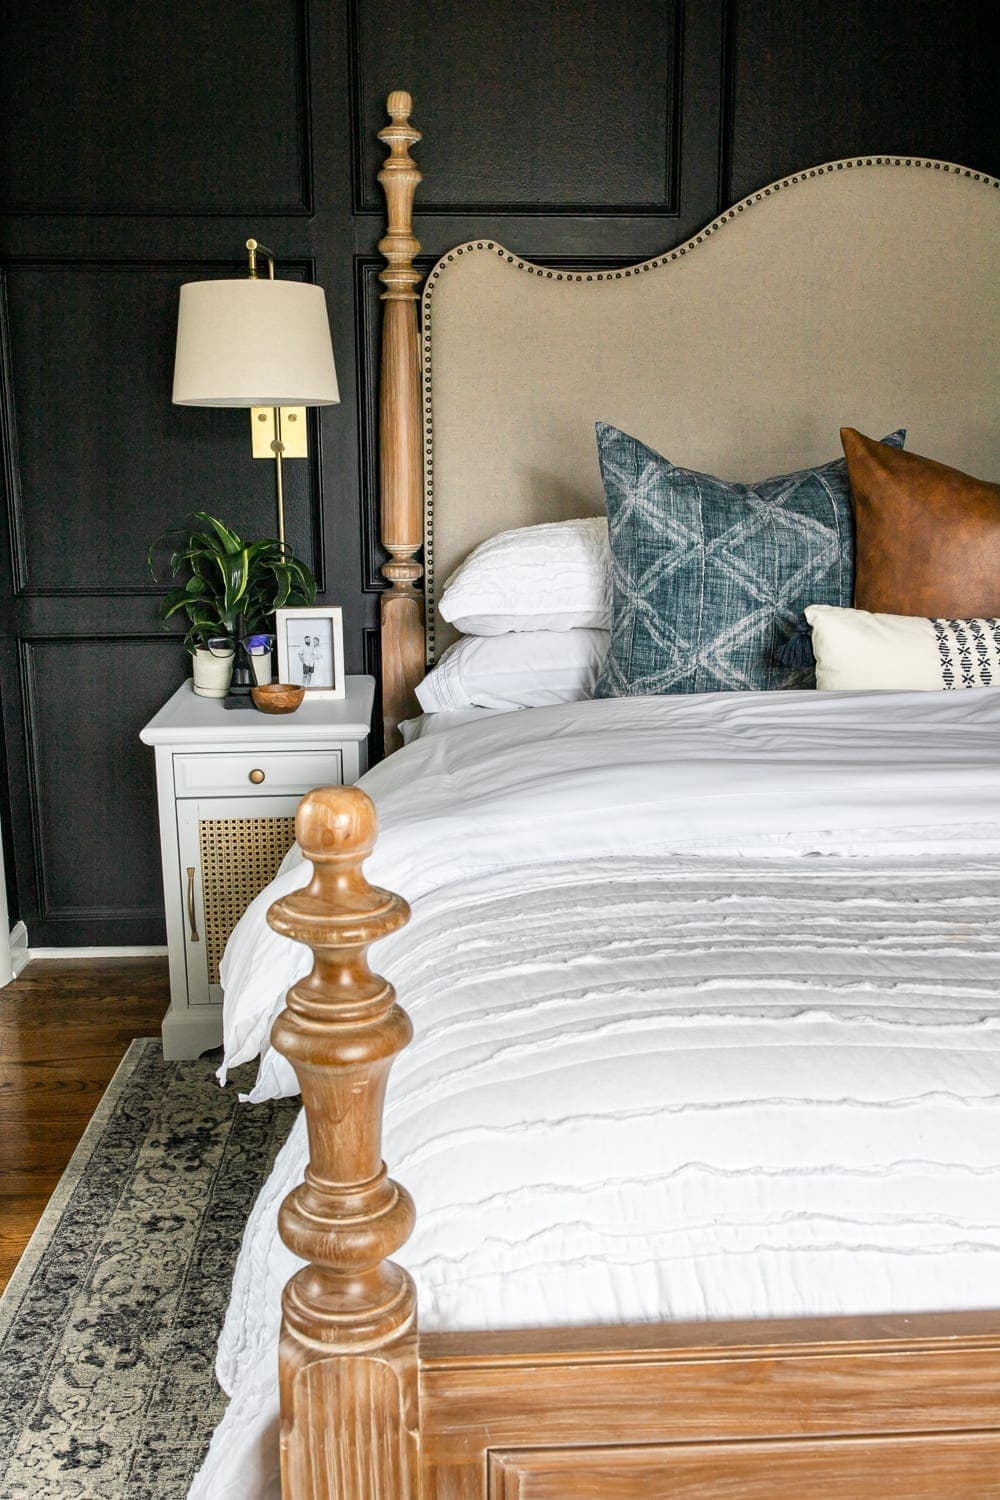 7 Tricks to Make Your Bed Fluffy for Less | Tips and tricks to make your bed fluffy and full like the magazines but for less than luxury bedding without sacrificing comfort.